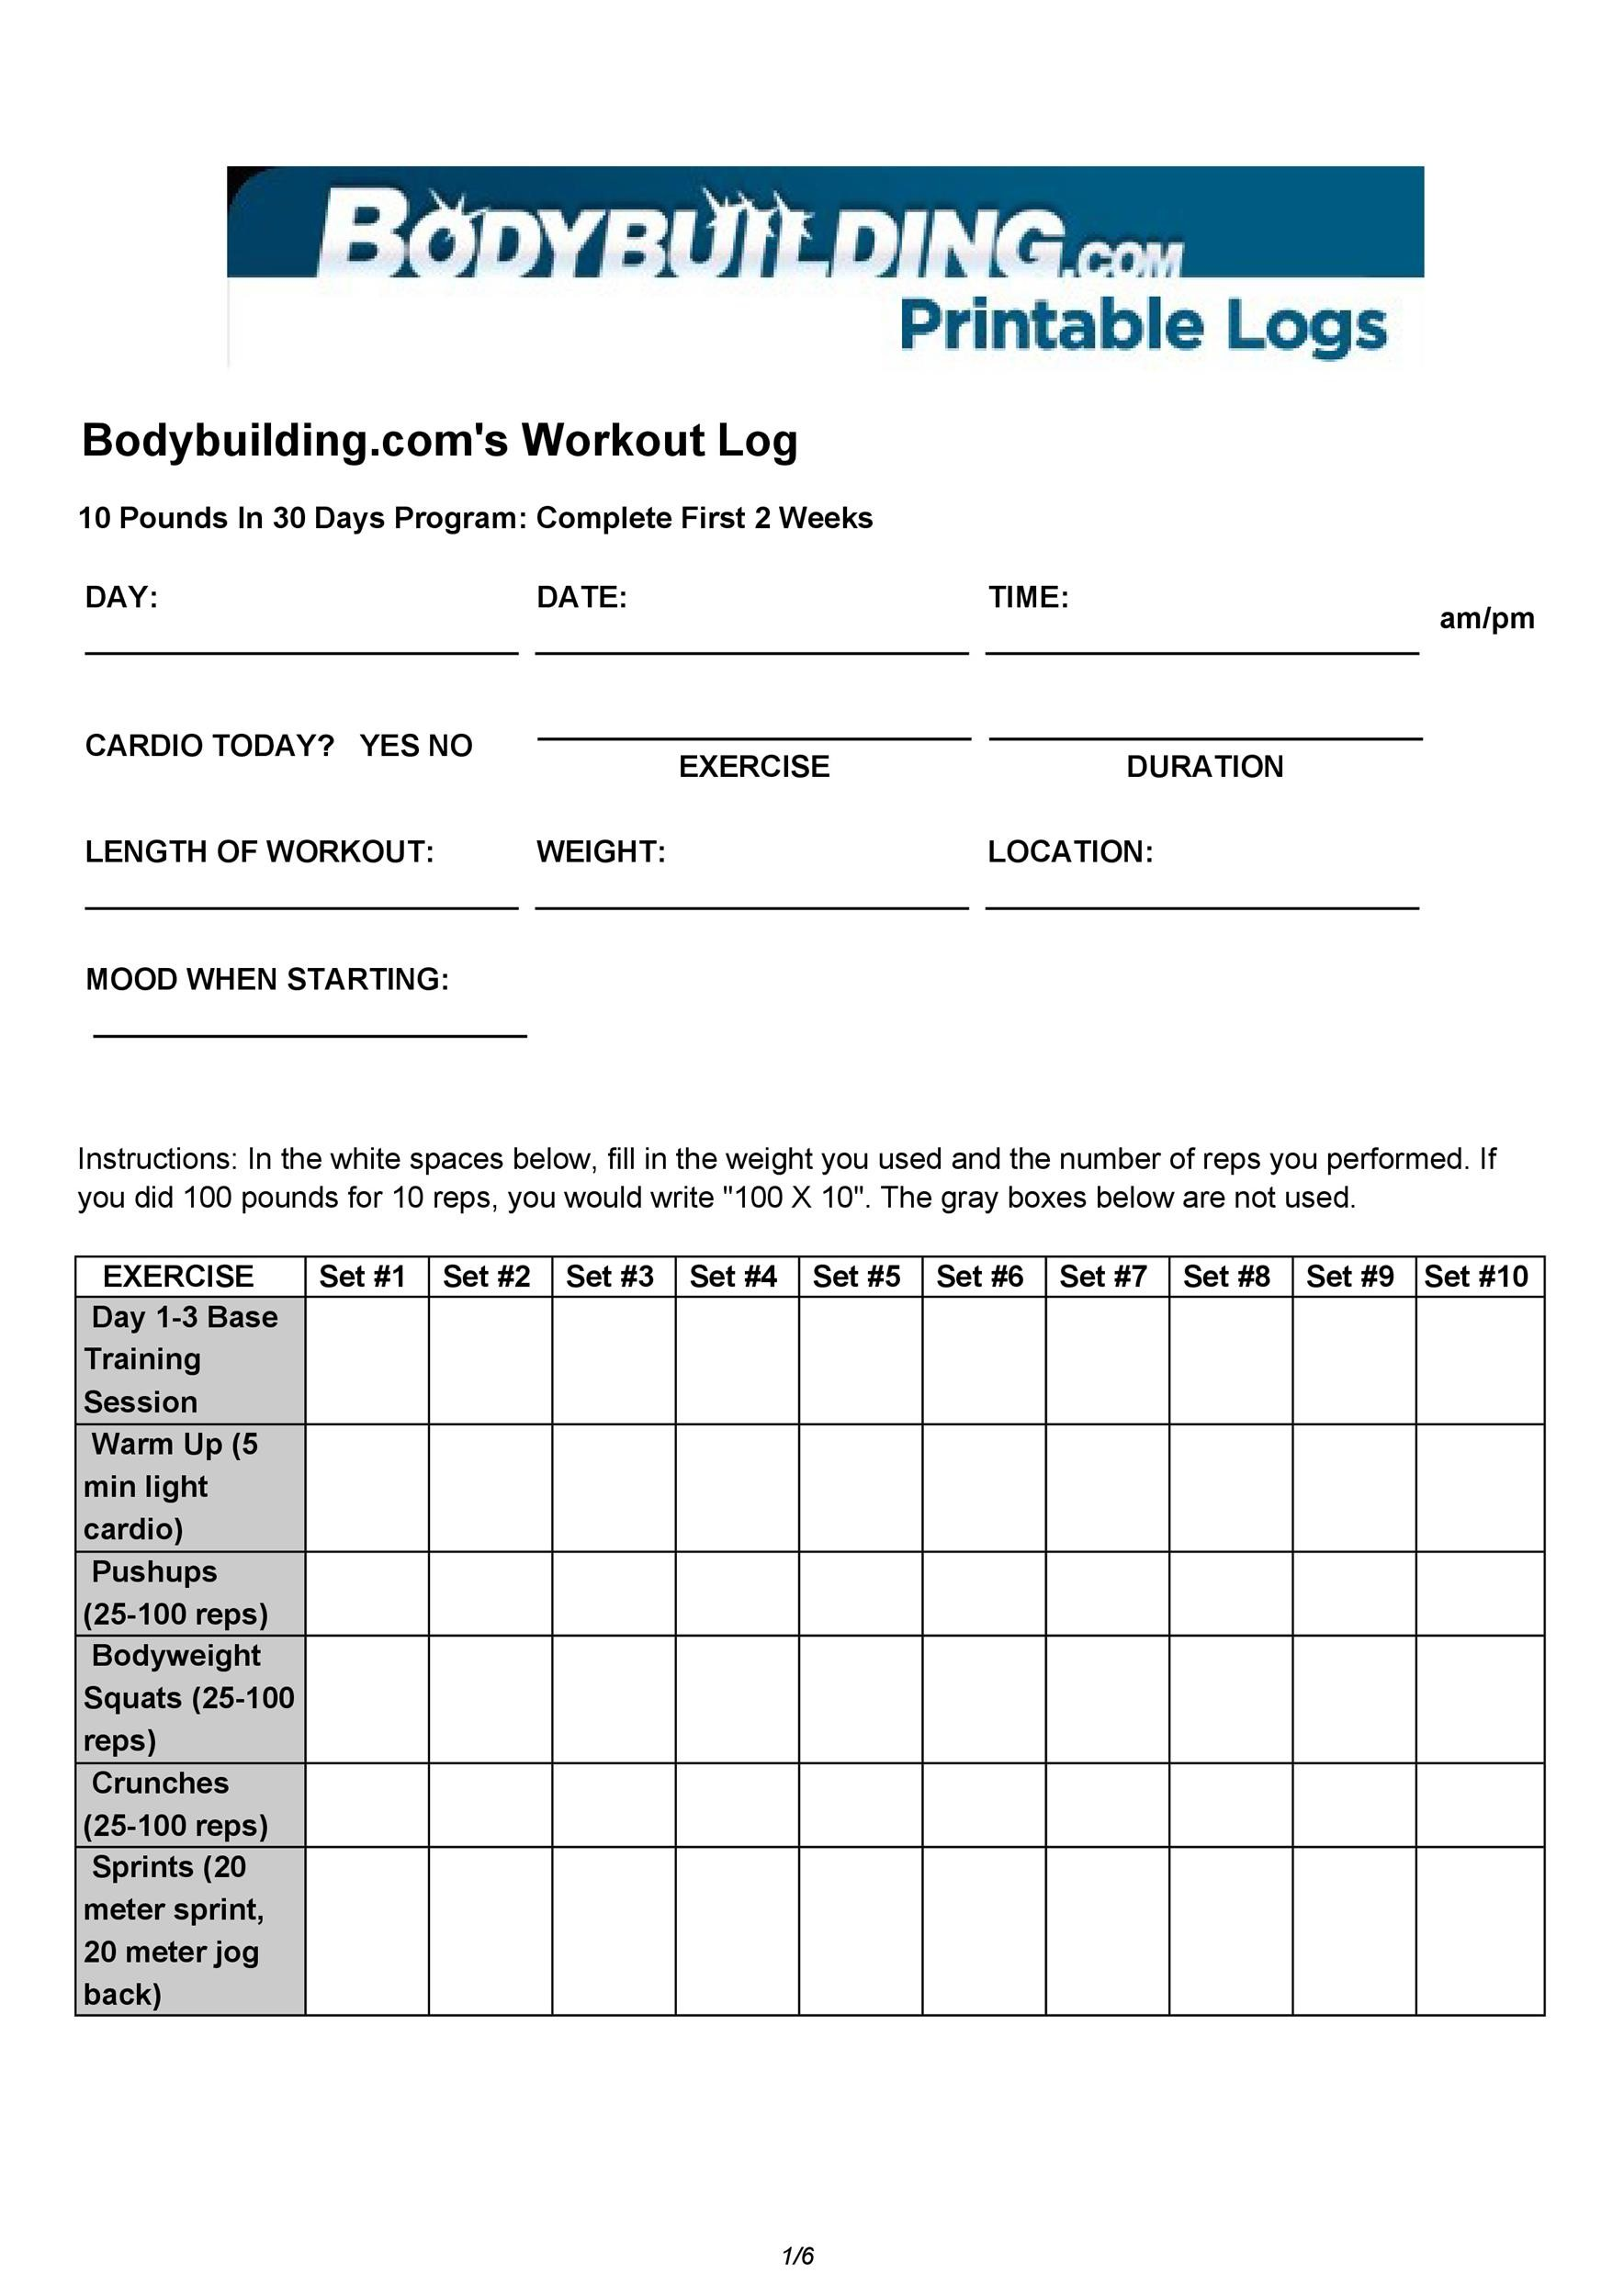 40+ Effective Workout Log & Calendar Templates - Template Lab